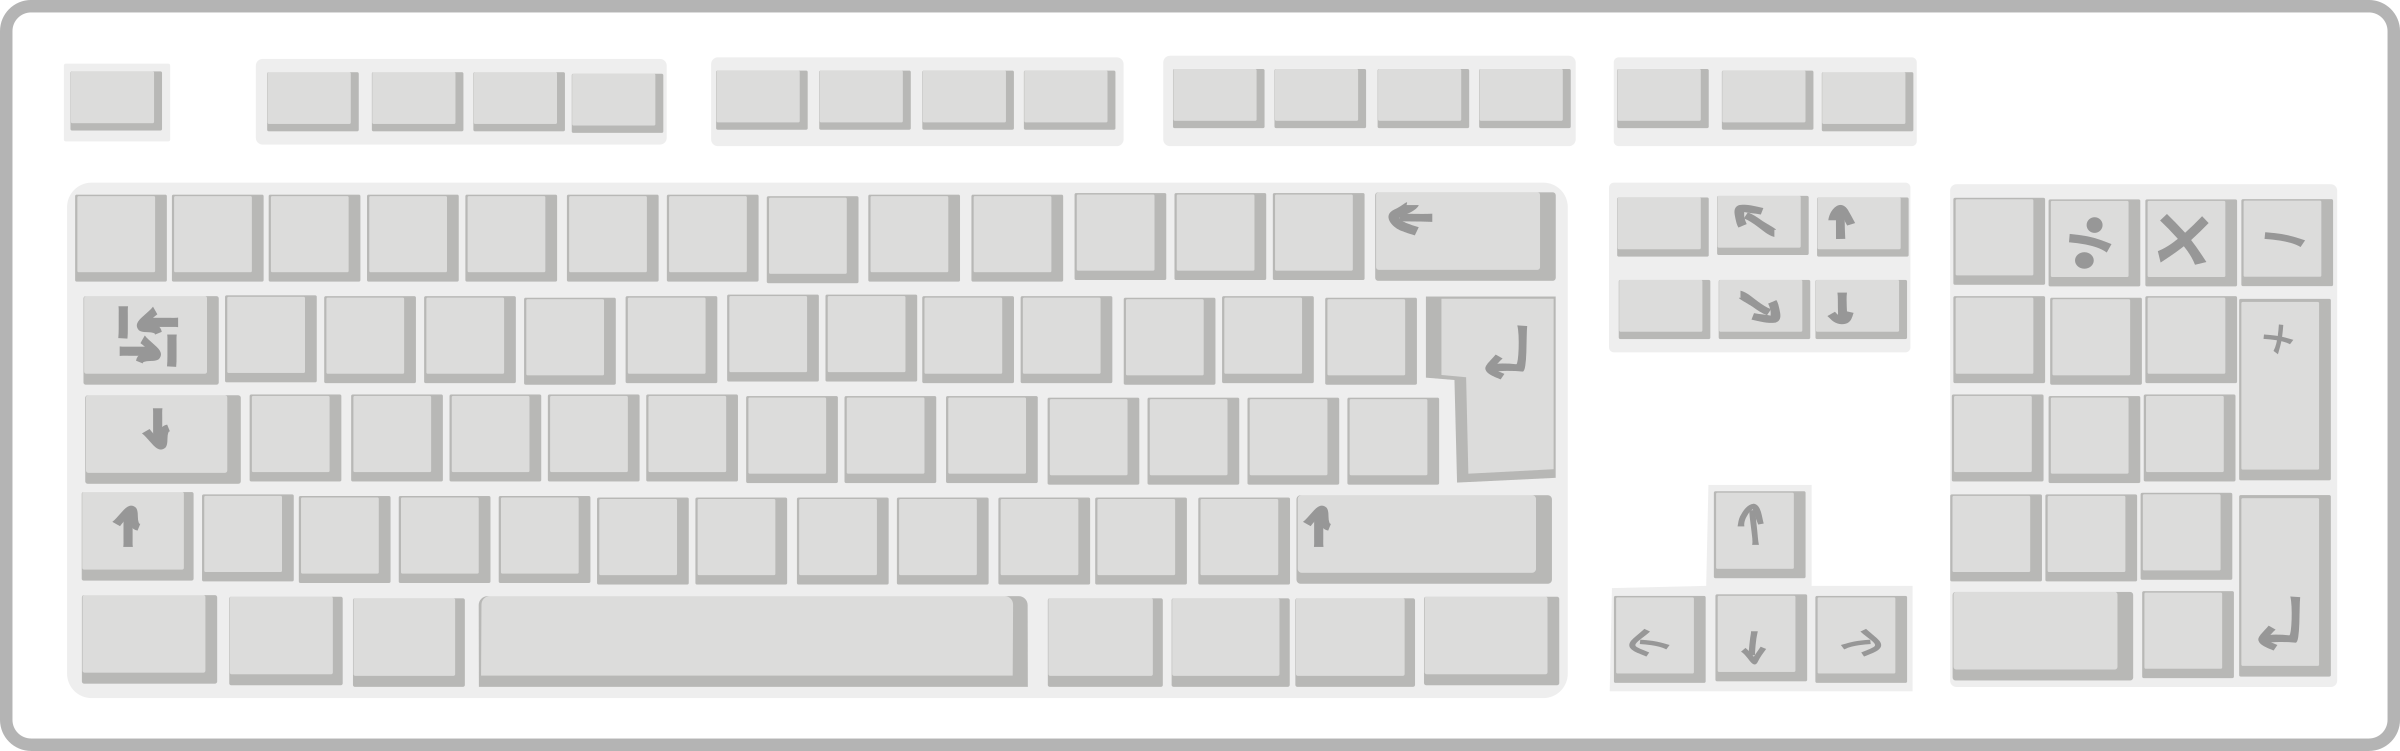 Blank White Keyboard by qubodup